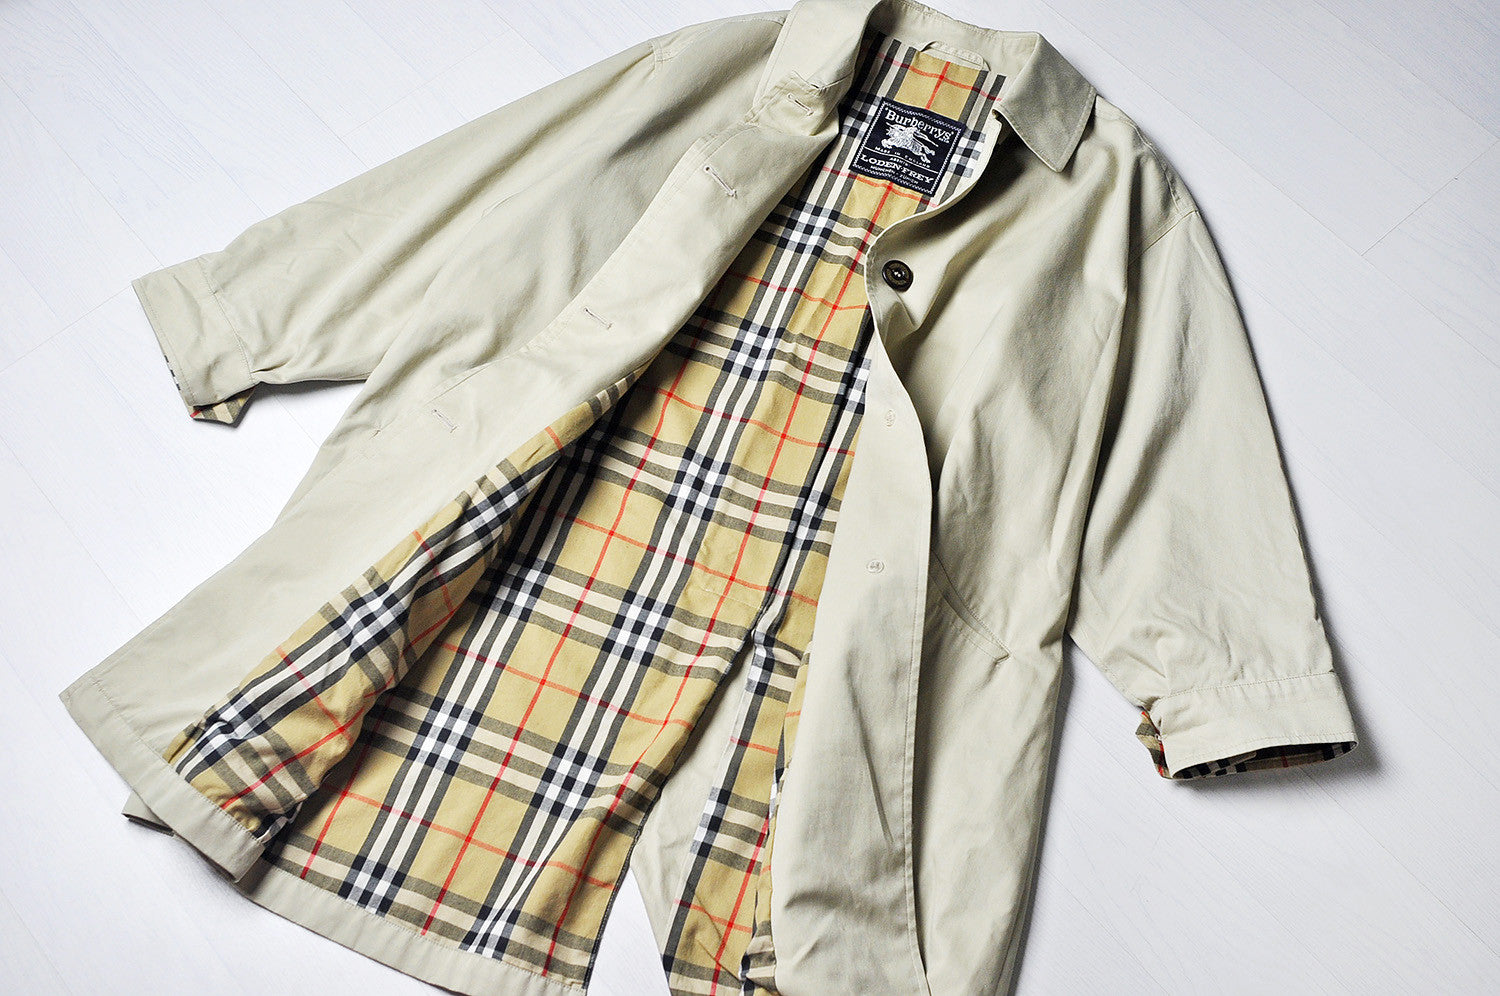 Vintage Burberry Tanned Long Line Trench Nova Check Jacket/Mac Coat